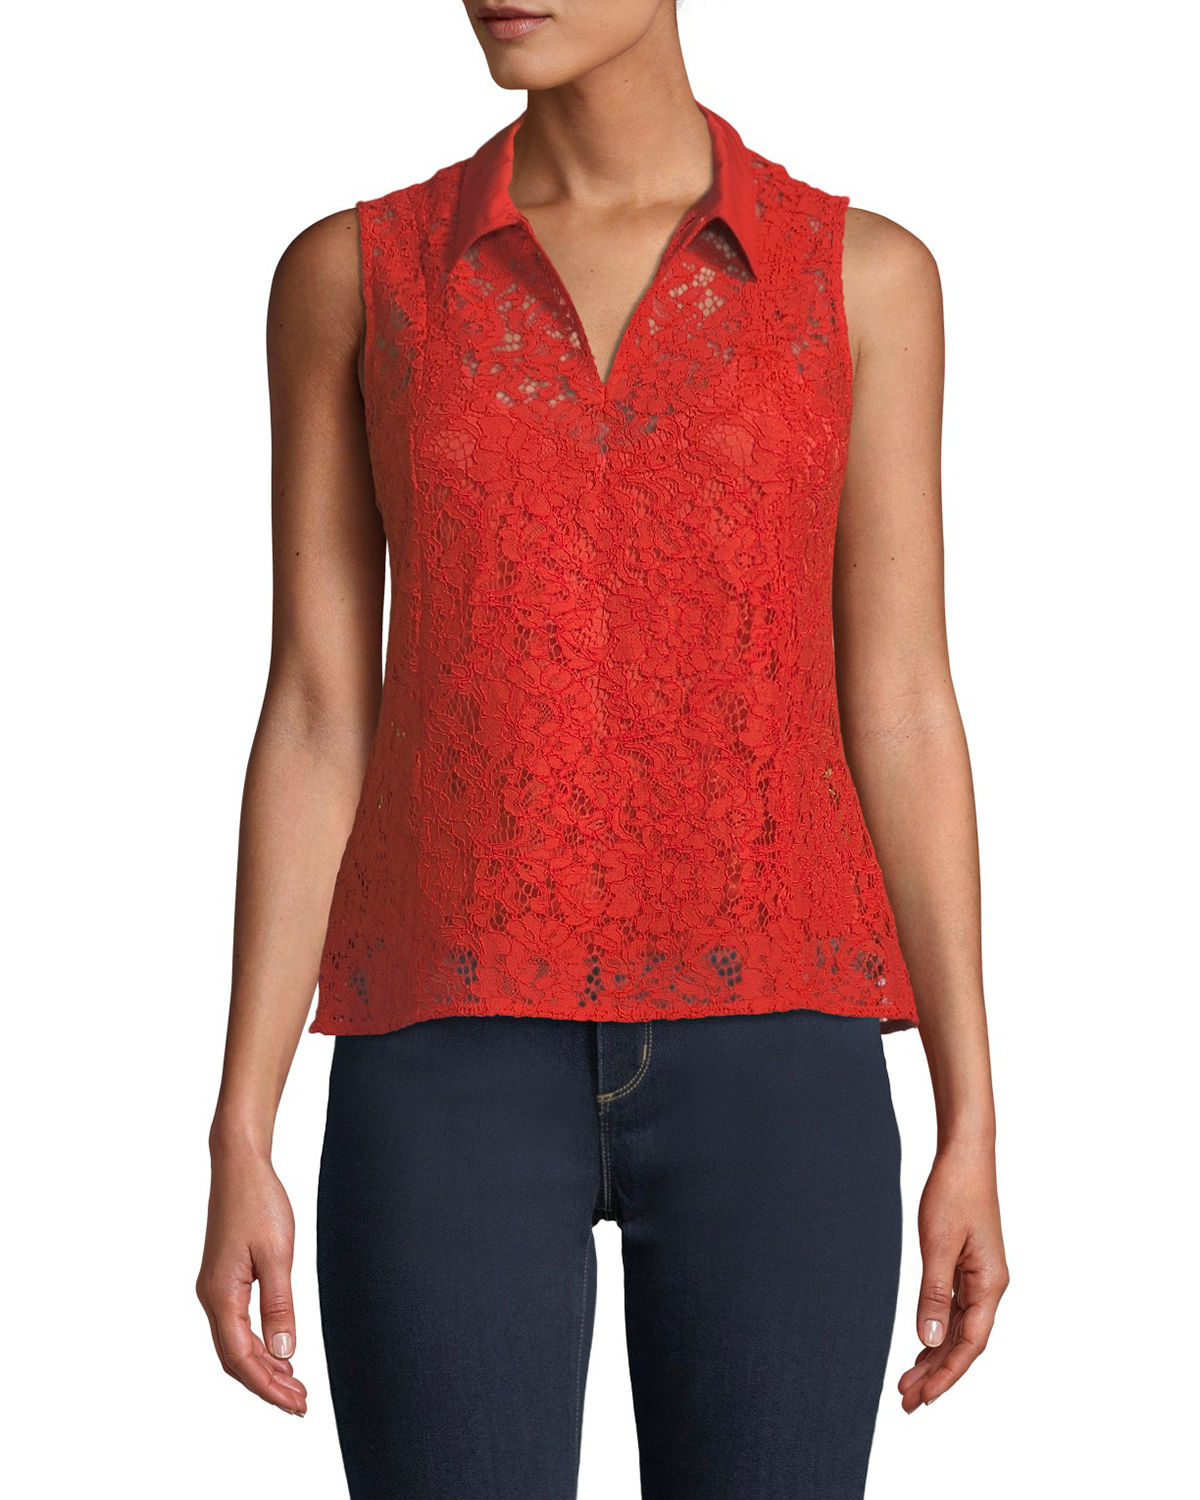 Collared Lace Sleeveless Top